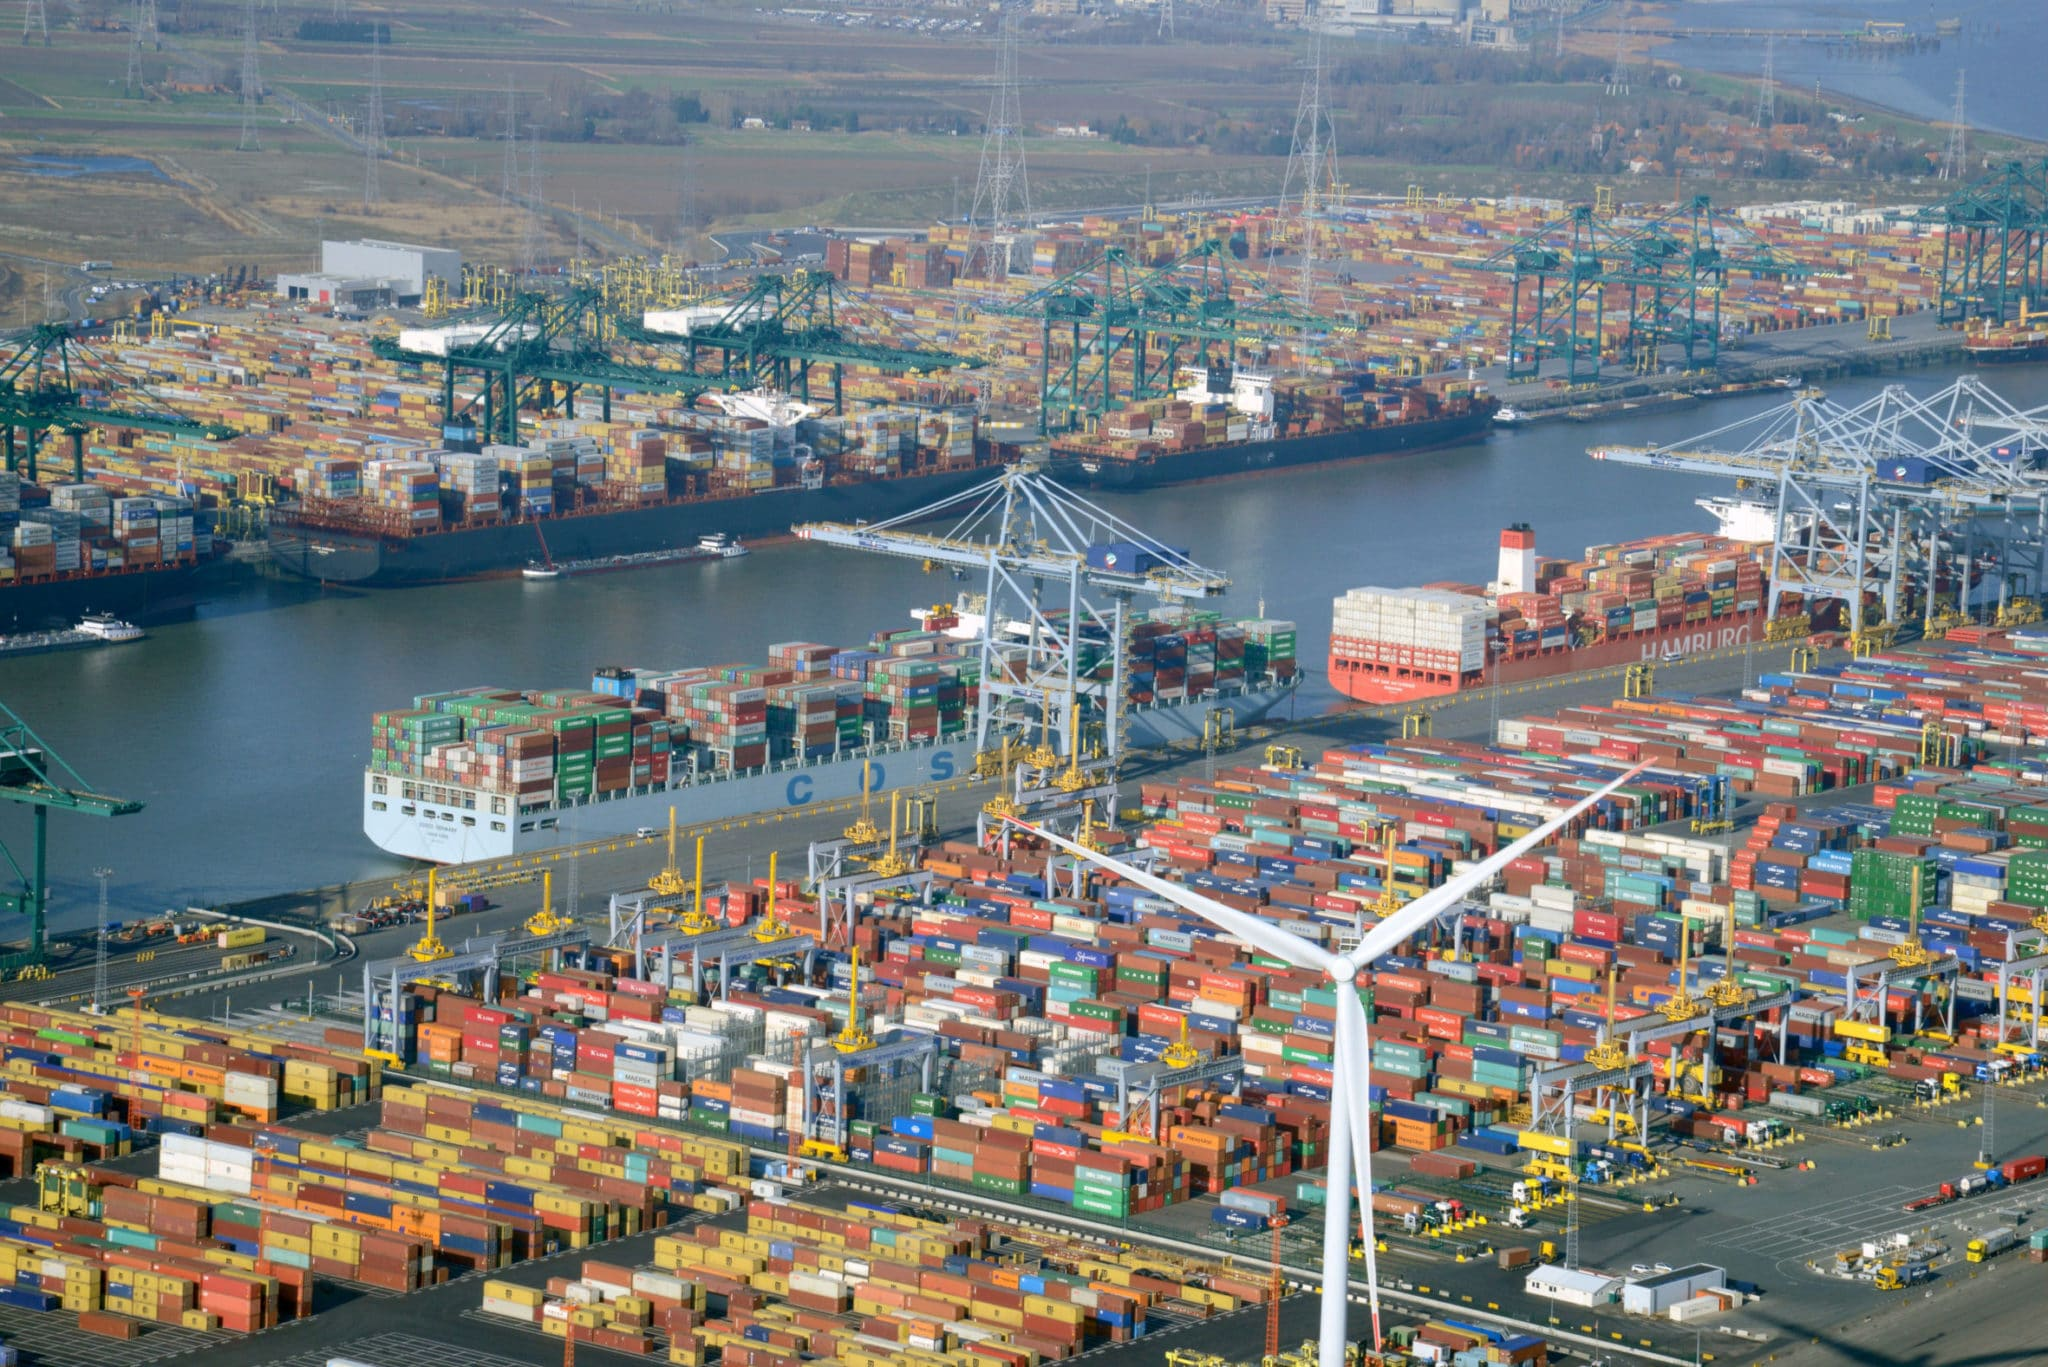 COSCO SHIPPING Ports Reports Container Throughput Down 3.7% In May